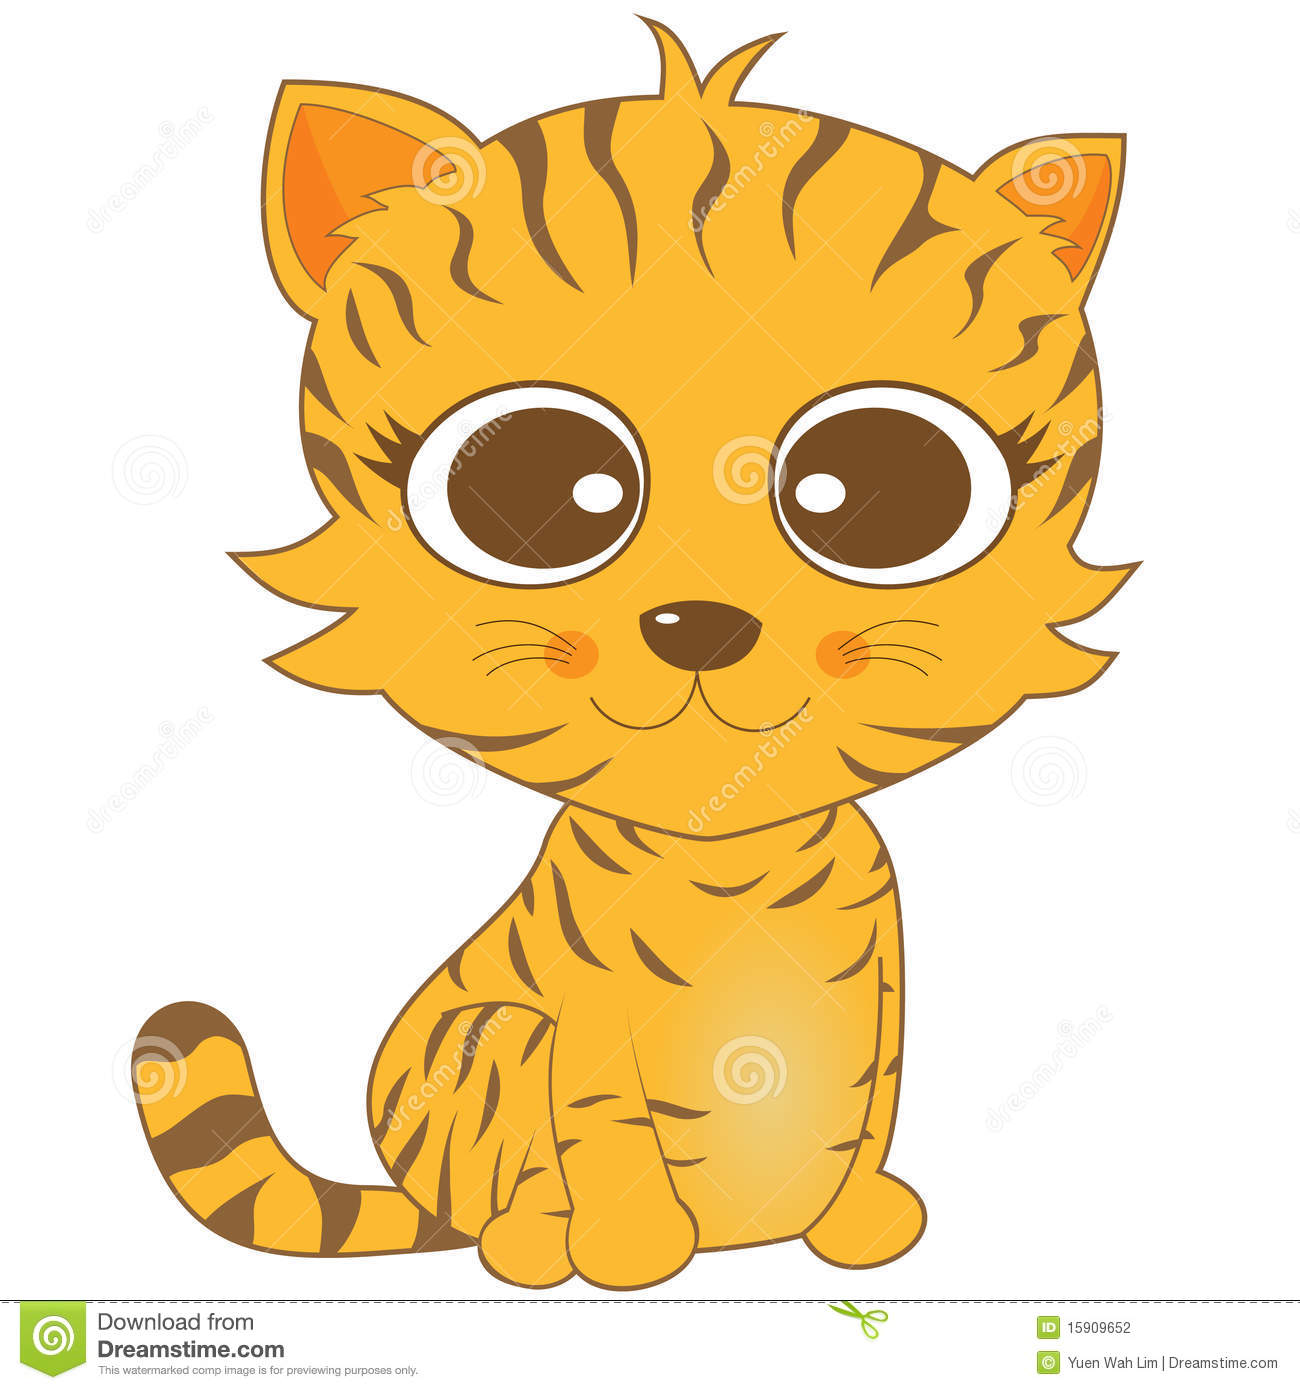 Clipart ktty with big eyes jpg transparent download Cartoon Cat Face Eyes Clip Art Stock Photos, Images, & Pictures ... jpg transparent download